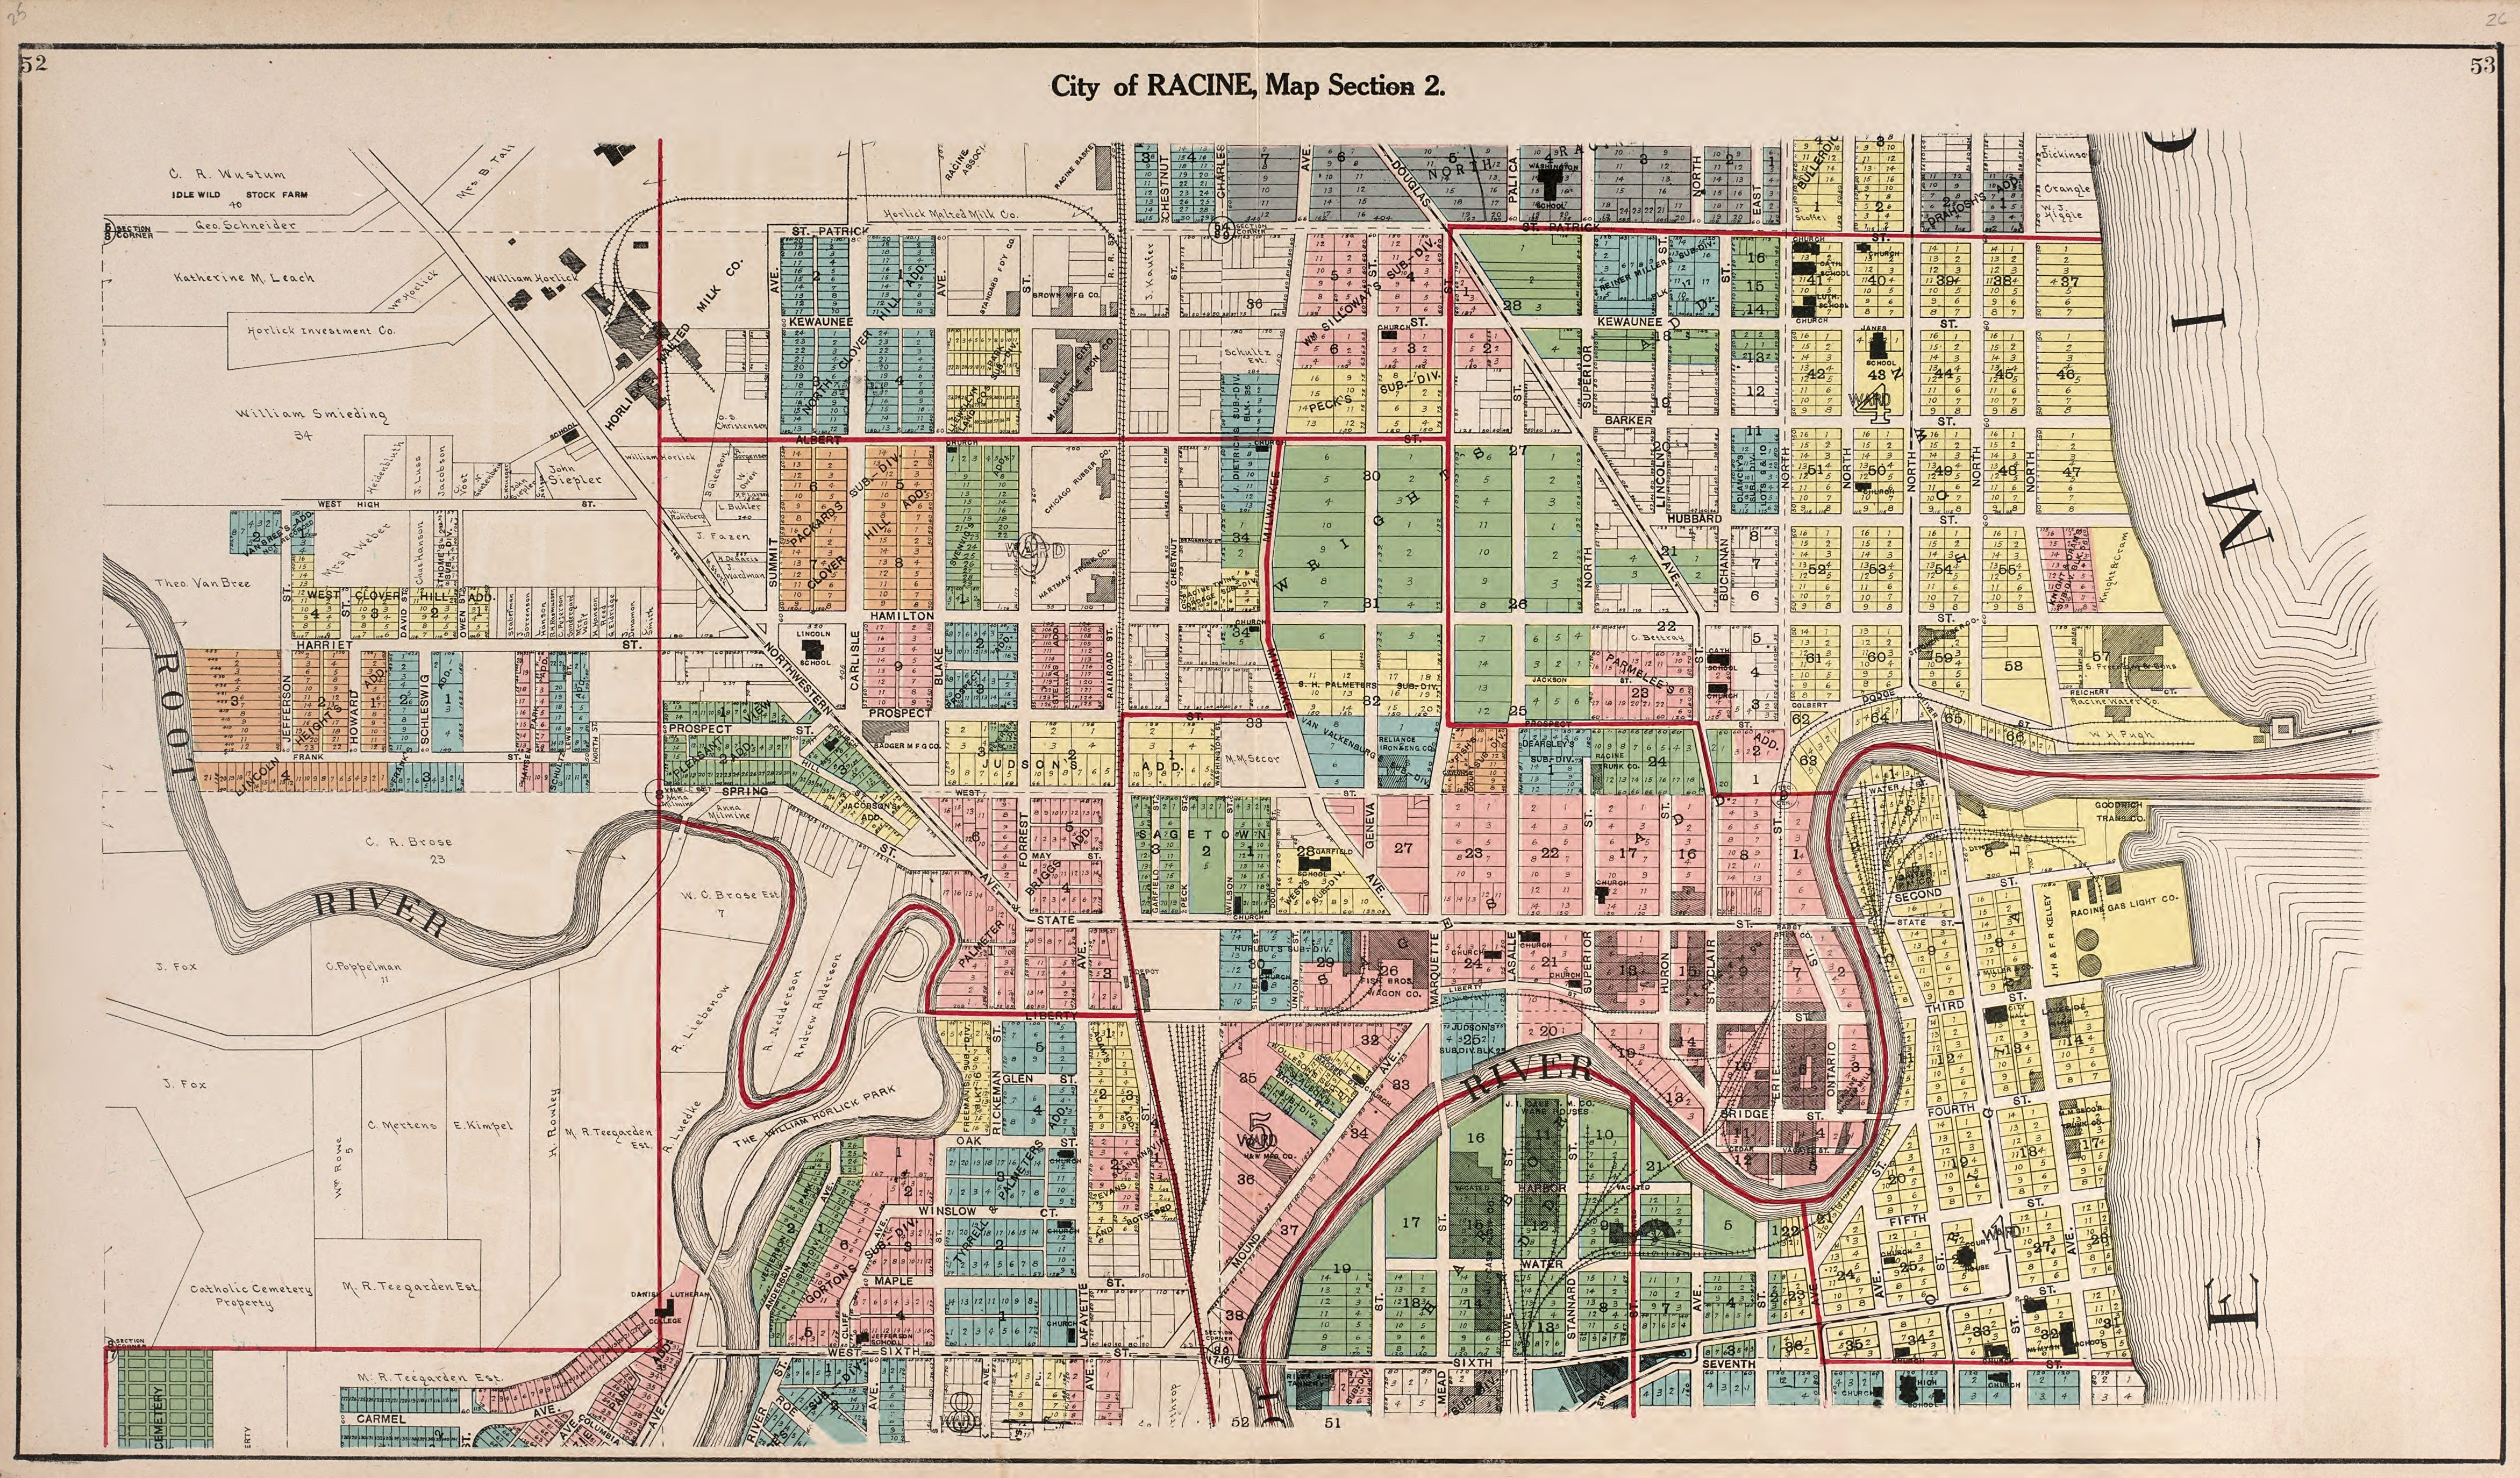 File:Plat book of Racine and Kenosha counties, Wisconsin - including on albany state map, green state map, iowa state map, oakland state map, arlington state map, corpus christi state map, oshkosh state map, galveston state map, billings state map, rochester state map, scranton state map, harvard state map, dayton state map, montgomery state map, lake county state map, tulsa state map, peoria state map, spokane state map, aurora state map, allentown state map,